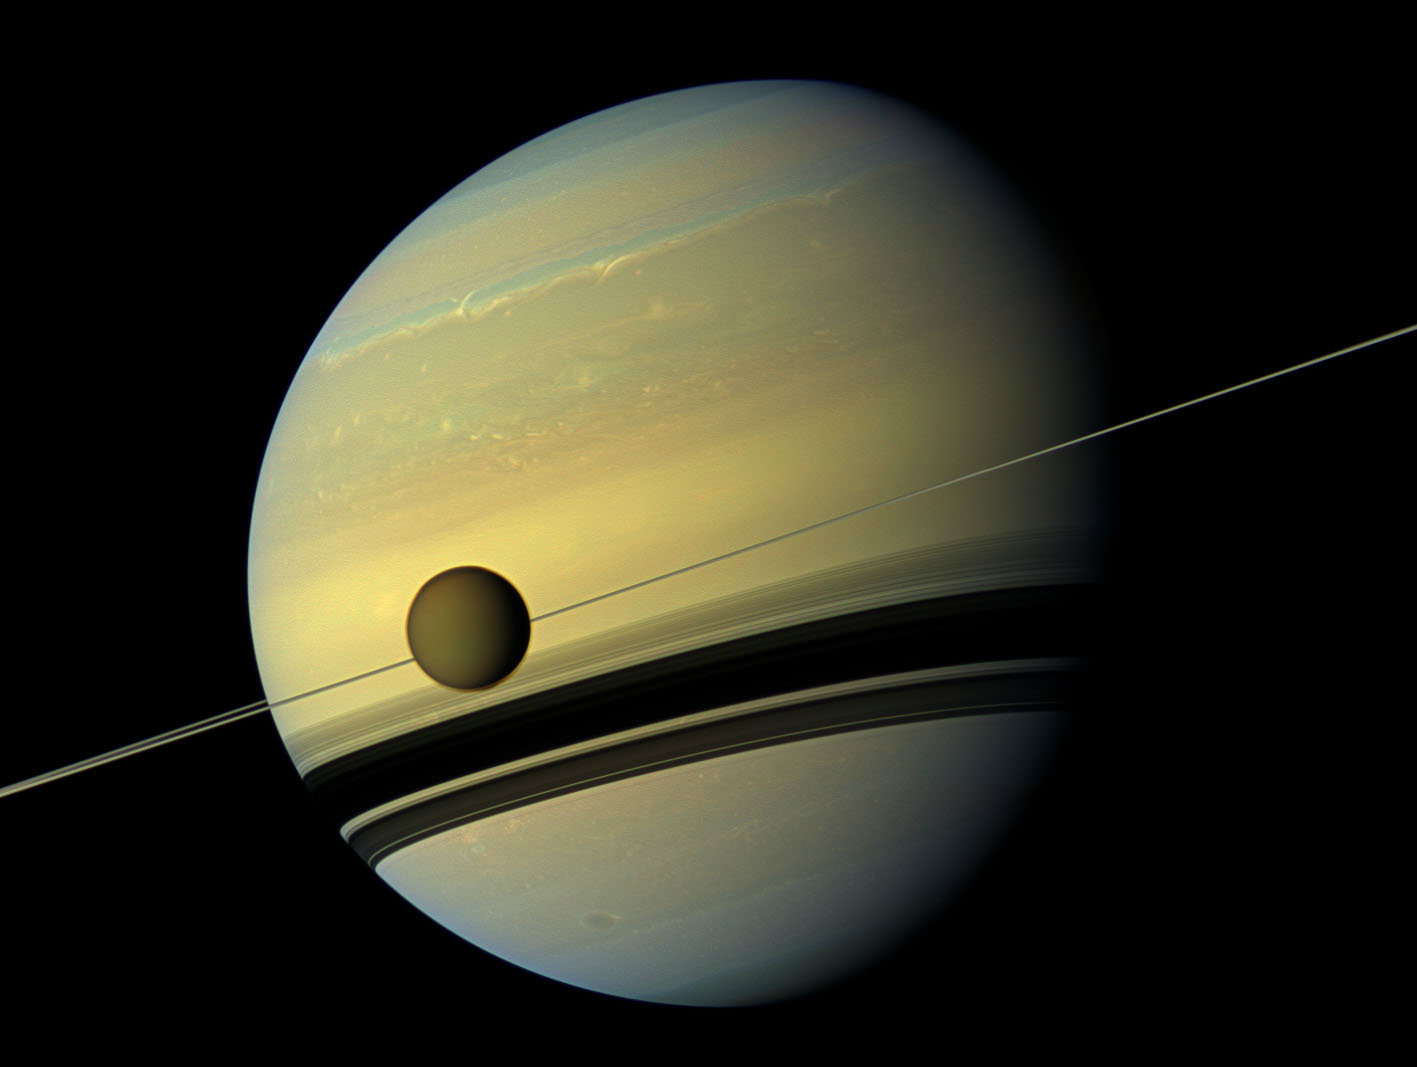 Titan, the biggest moon around Saturn, seems like a suitable place to support alien life. Photo credit: Photo credit: The Daily Galaxy